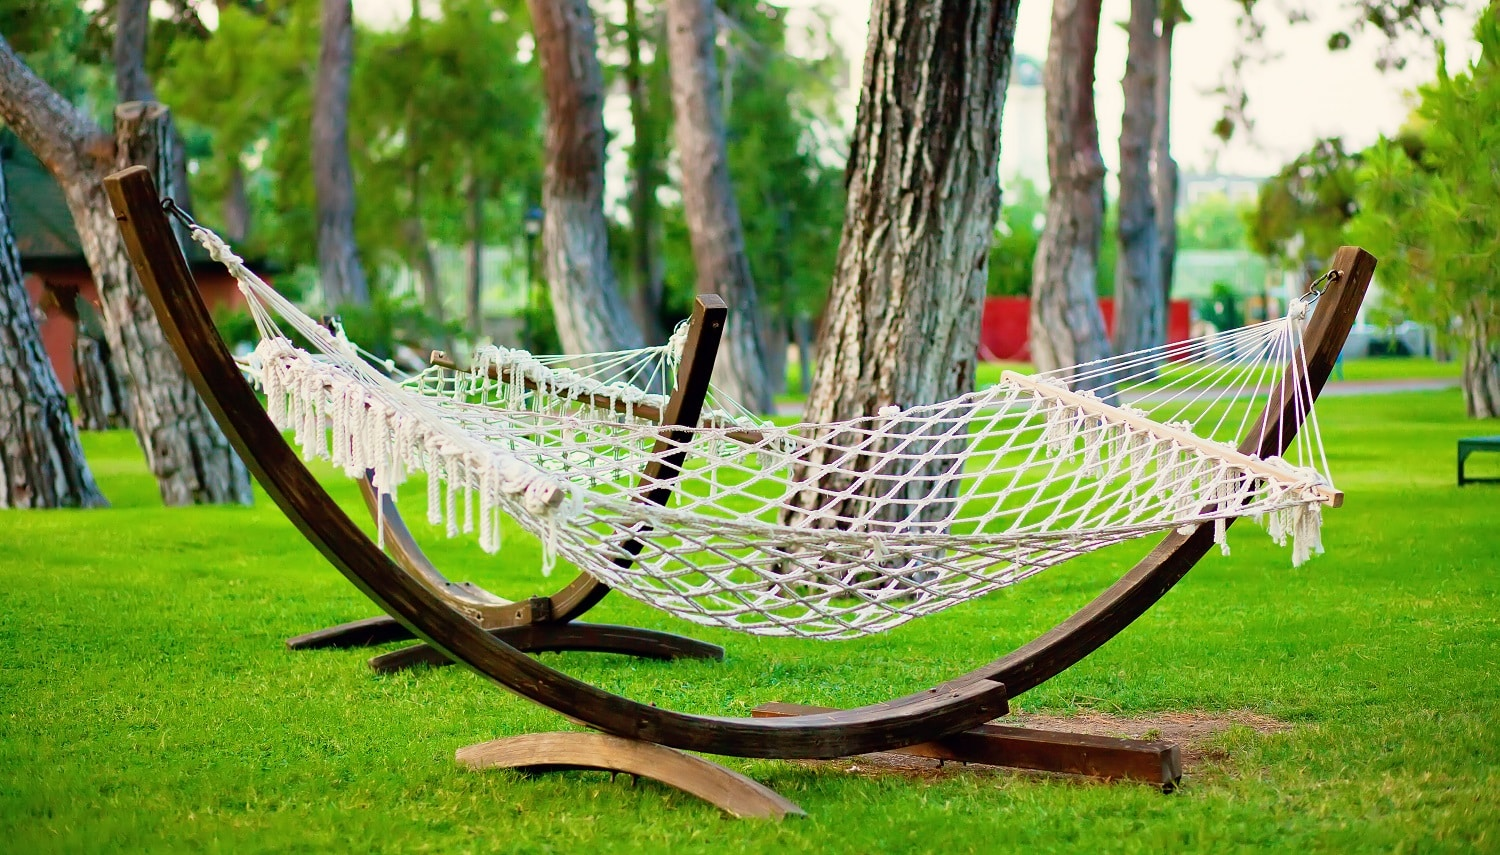 Summer park with hanging hammock for relaxation